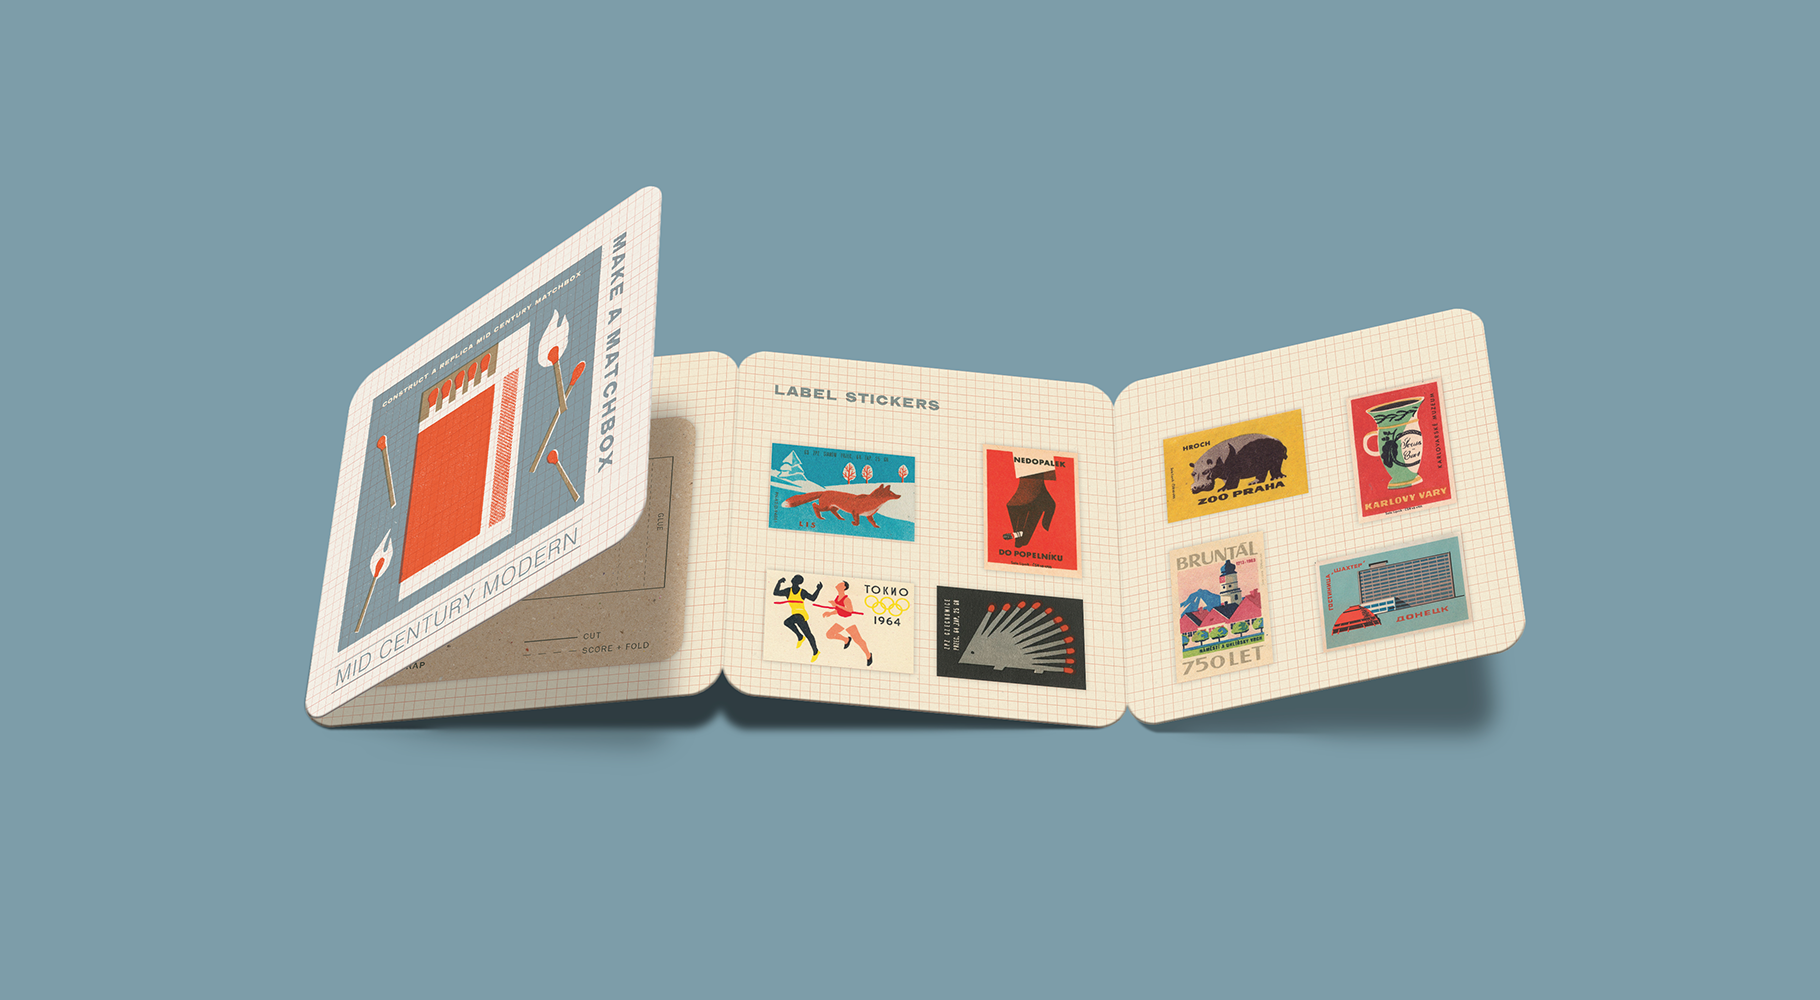 """An accordion brochure called """"Make a Matchbook"""", including items to make a vintage matchbook"""